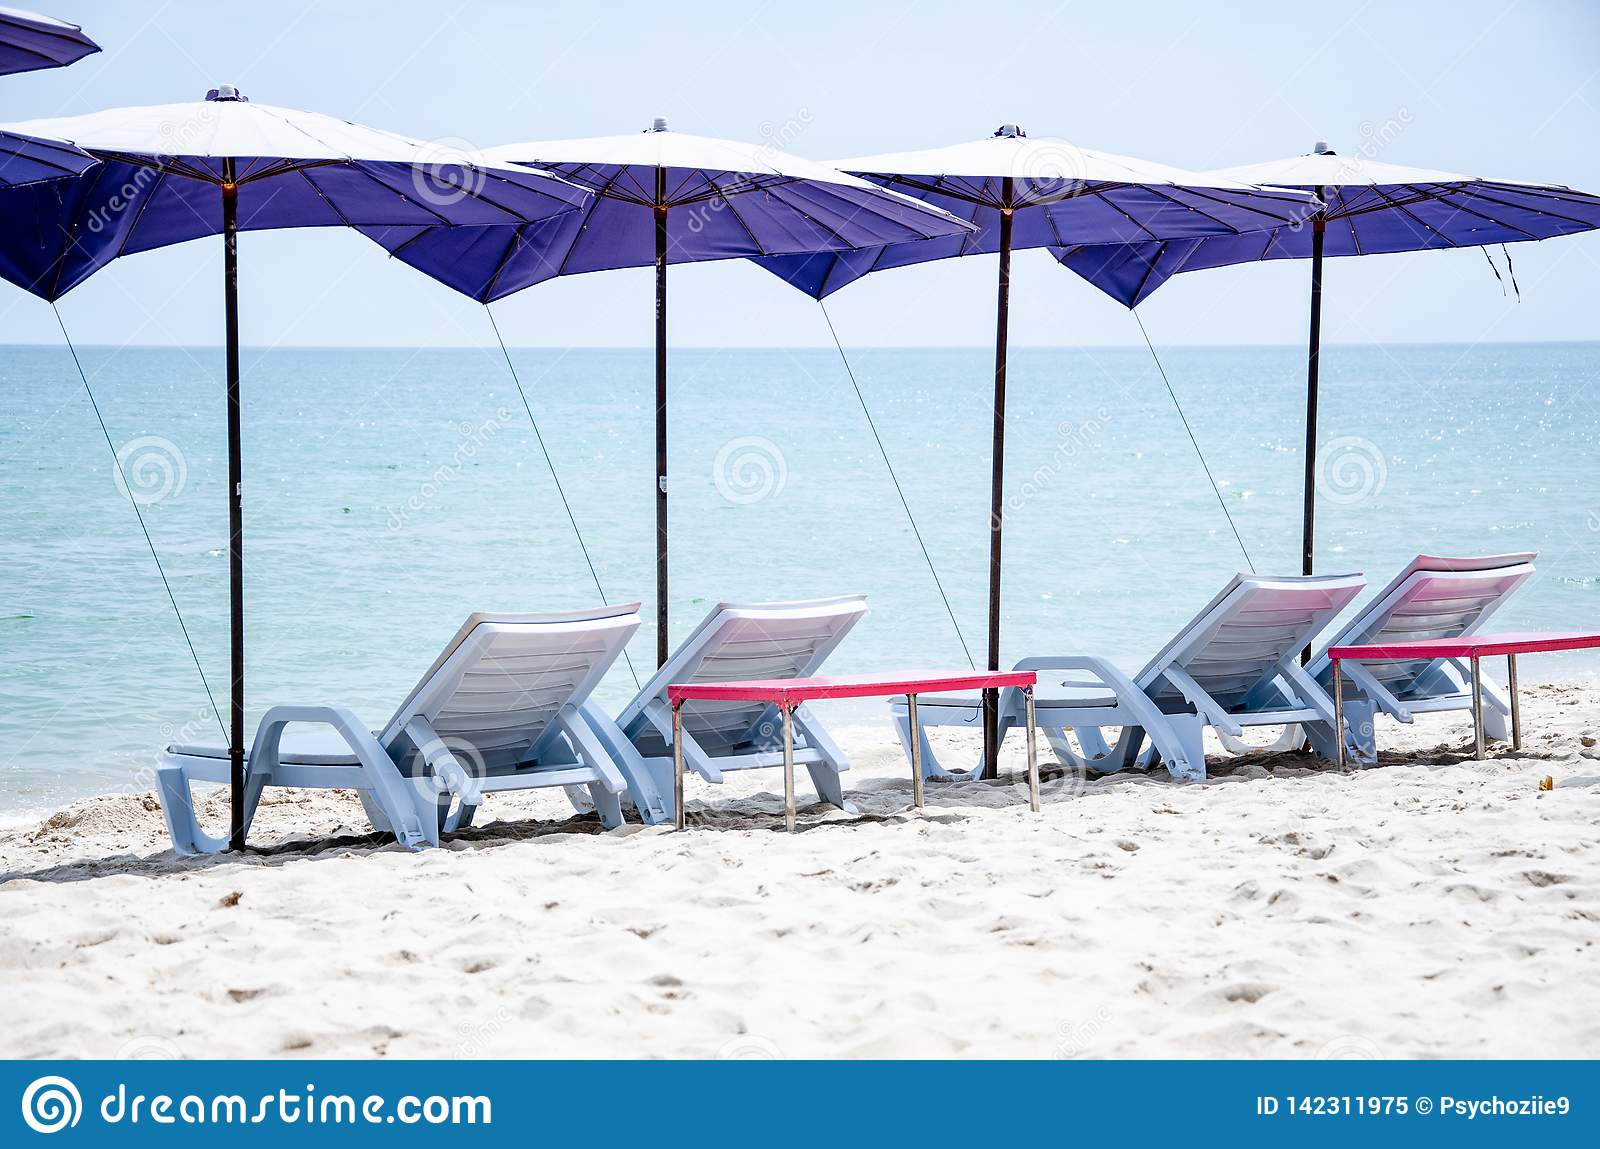 Incredible Folding Chairs With Umbrellas Are Located On The Beach For Gmtry Best Dining Table And Chair Ideas Images Gmtryco